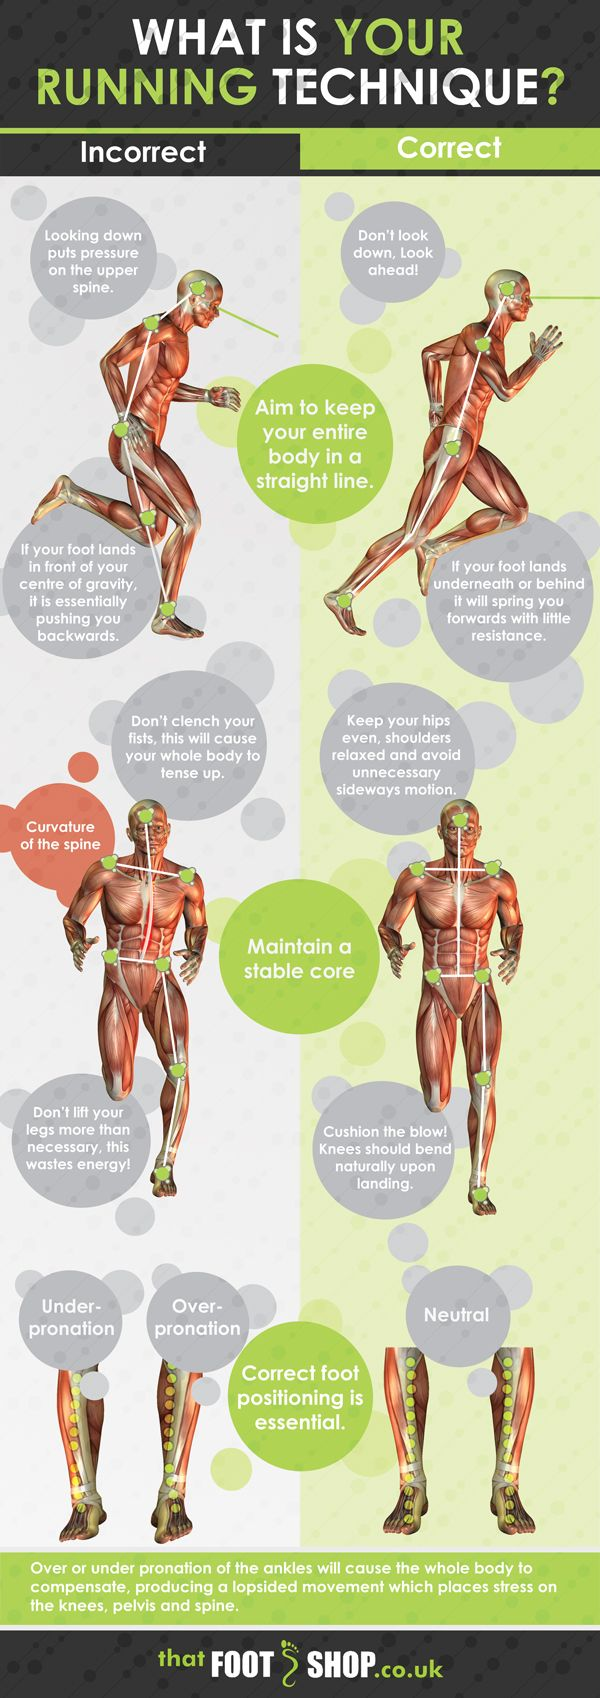 What Is Your Running Technique? Infographic